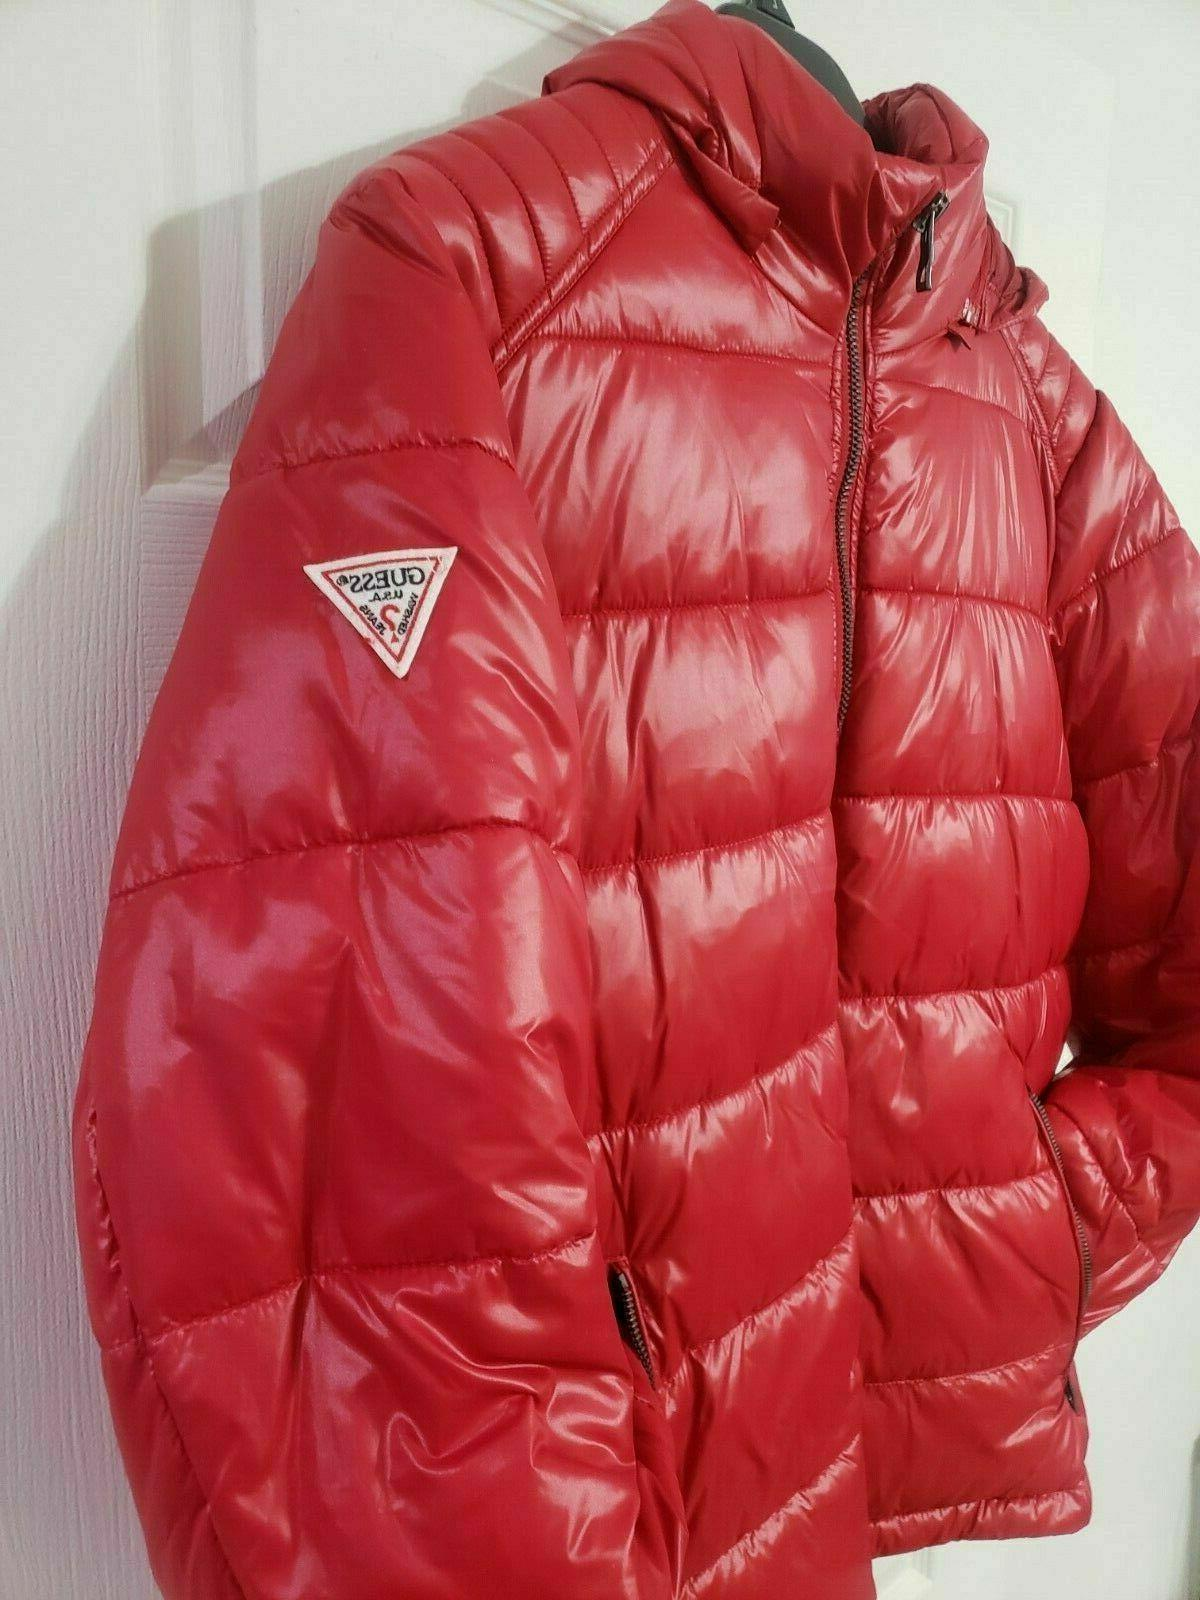 GUESS Removable Hood Red - With Tags